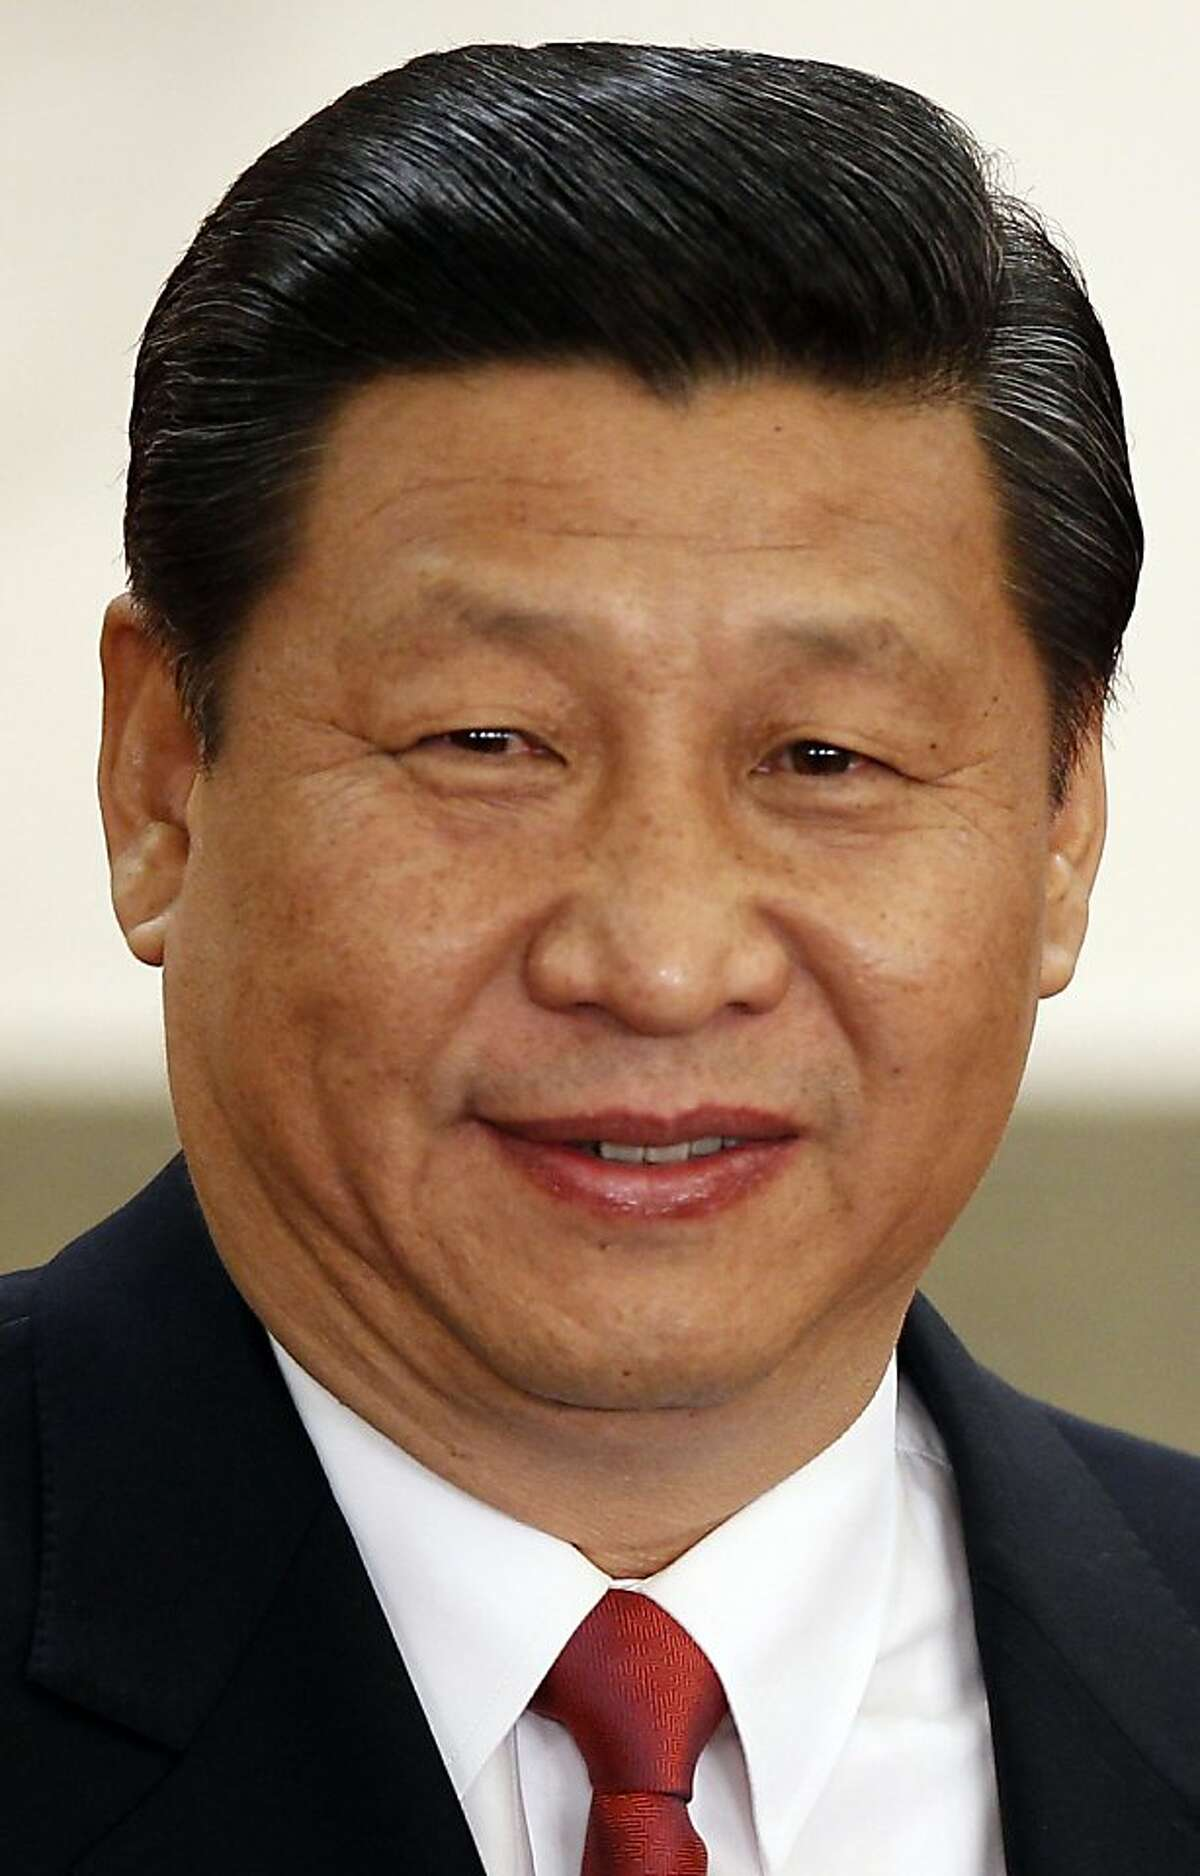 3. Xi Jinping, General Secretary of the Chinese Communist Party